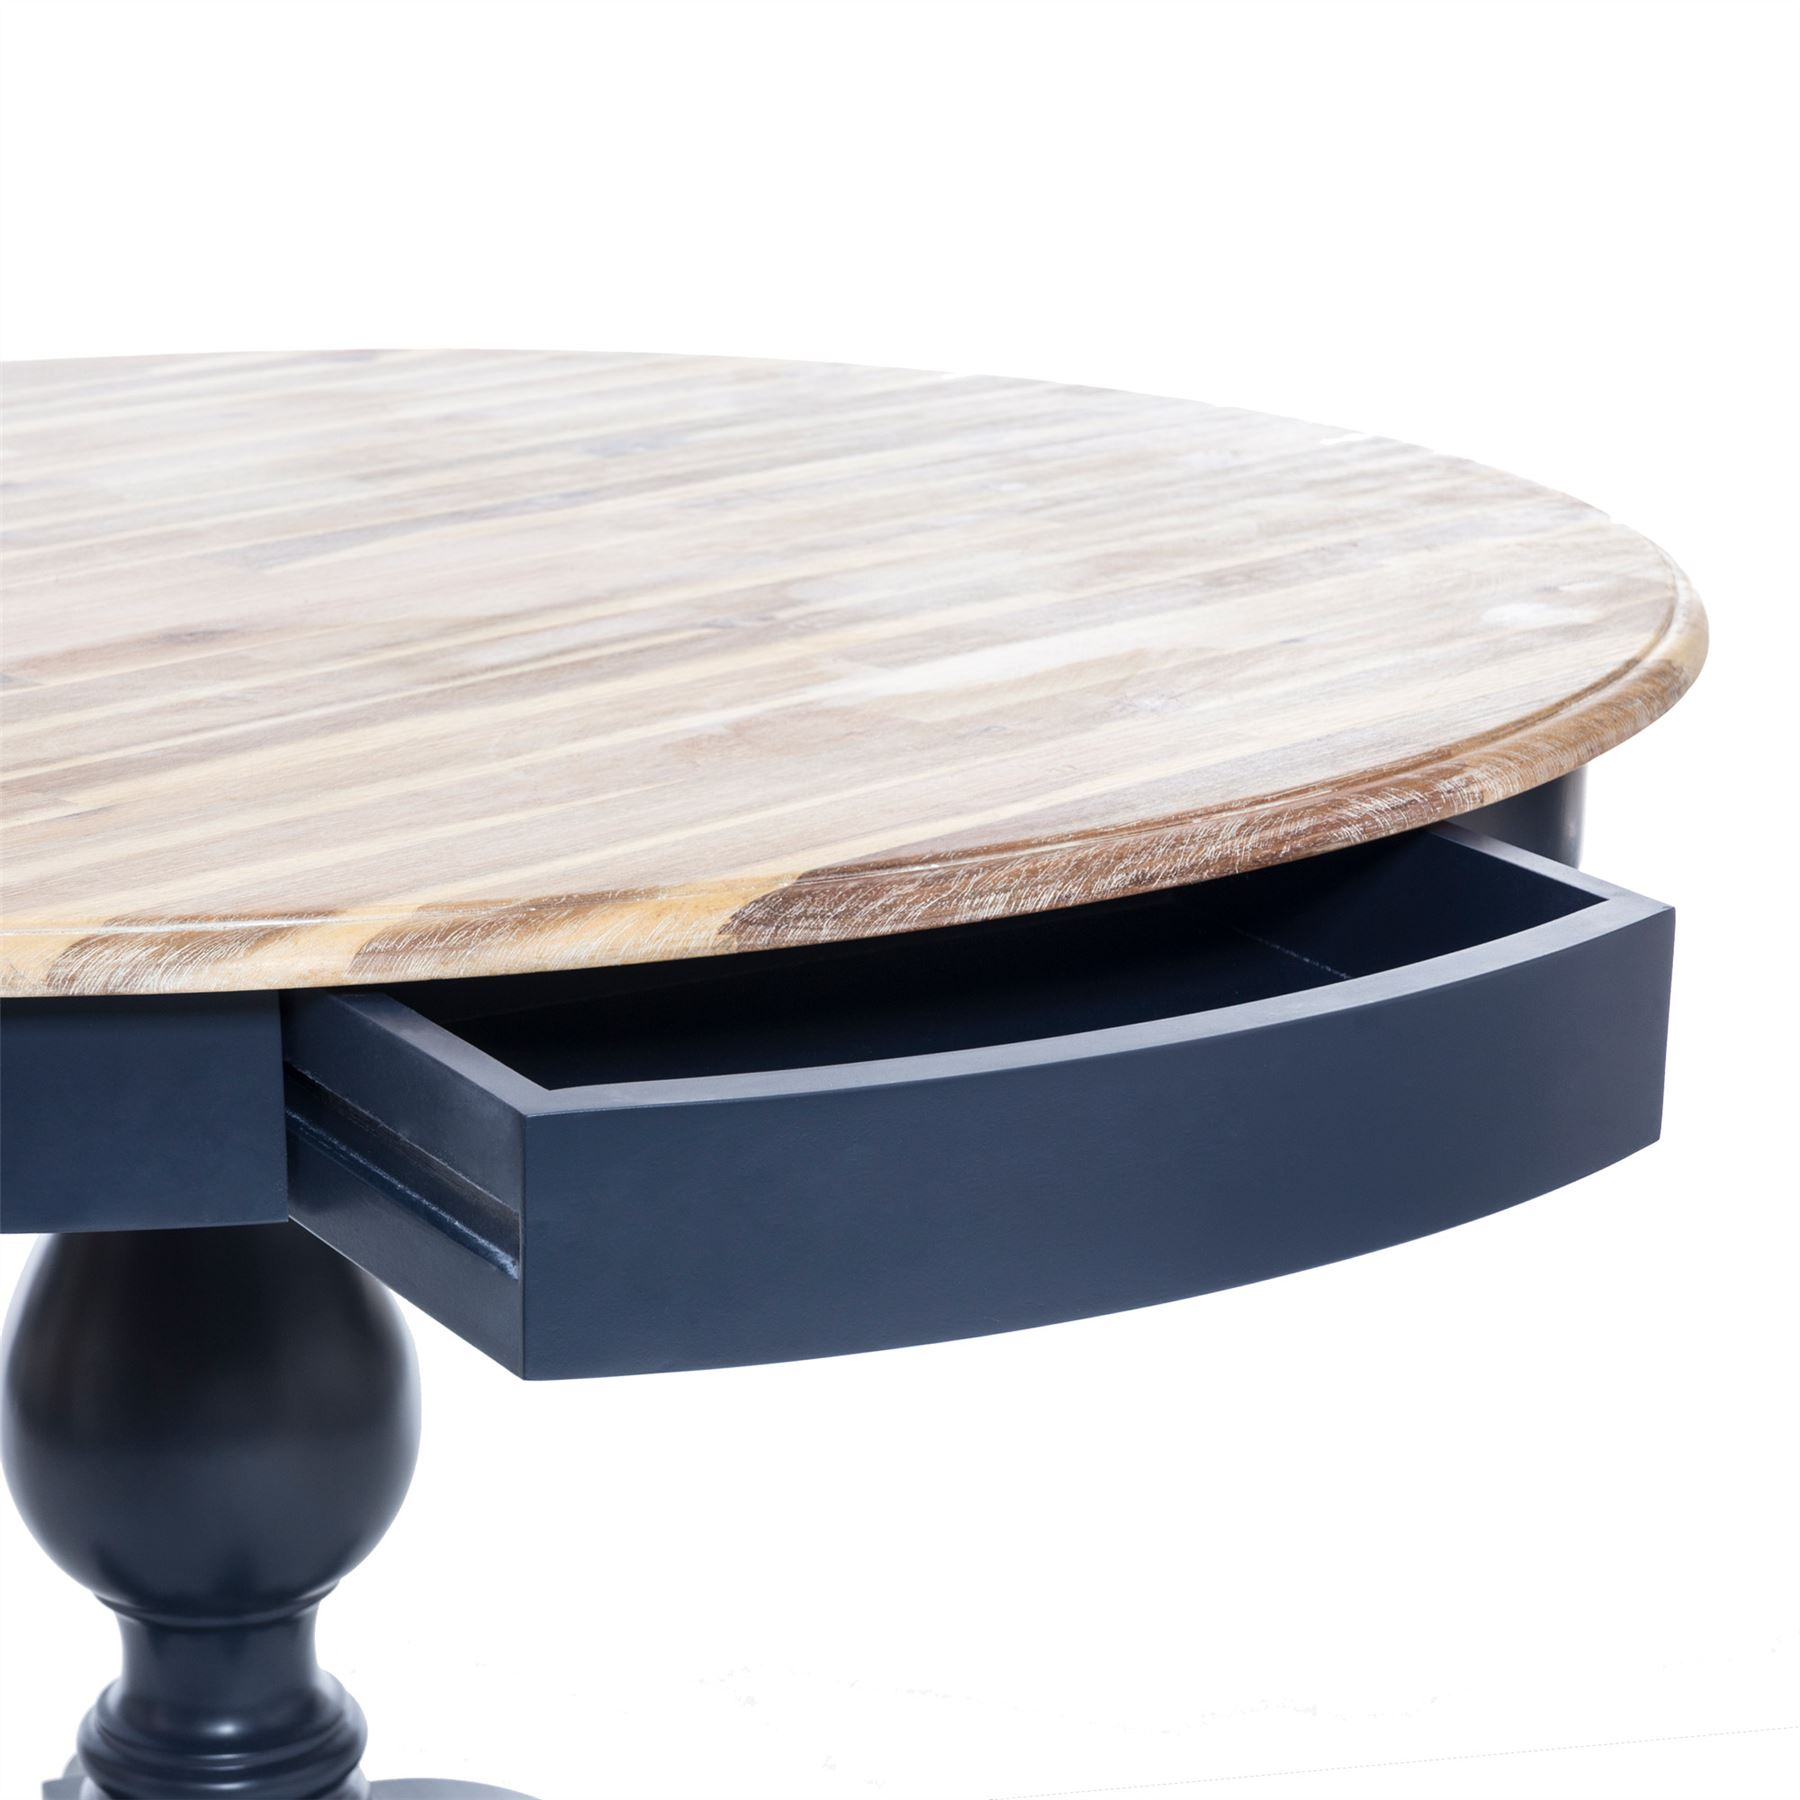 Florence Large Pedestal Dining Table Navy Blue Round Dining Table With 2 Drawers 5060346455419 Ebay